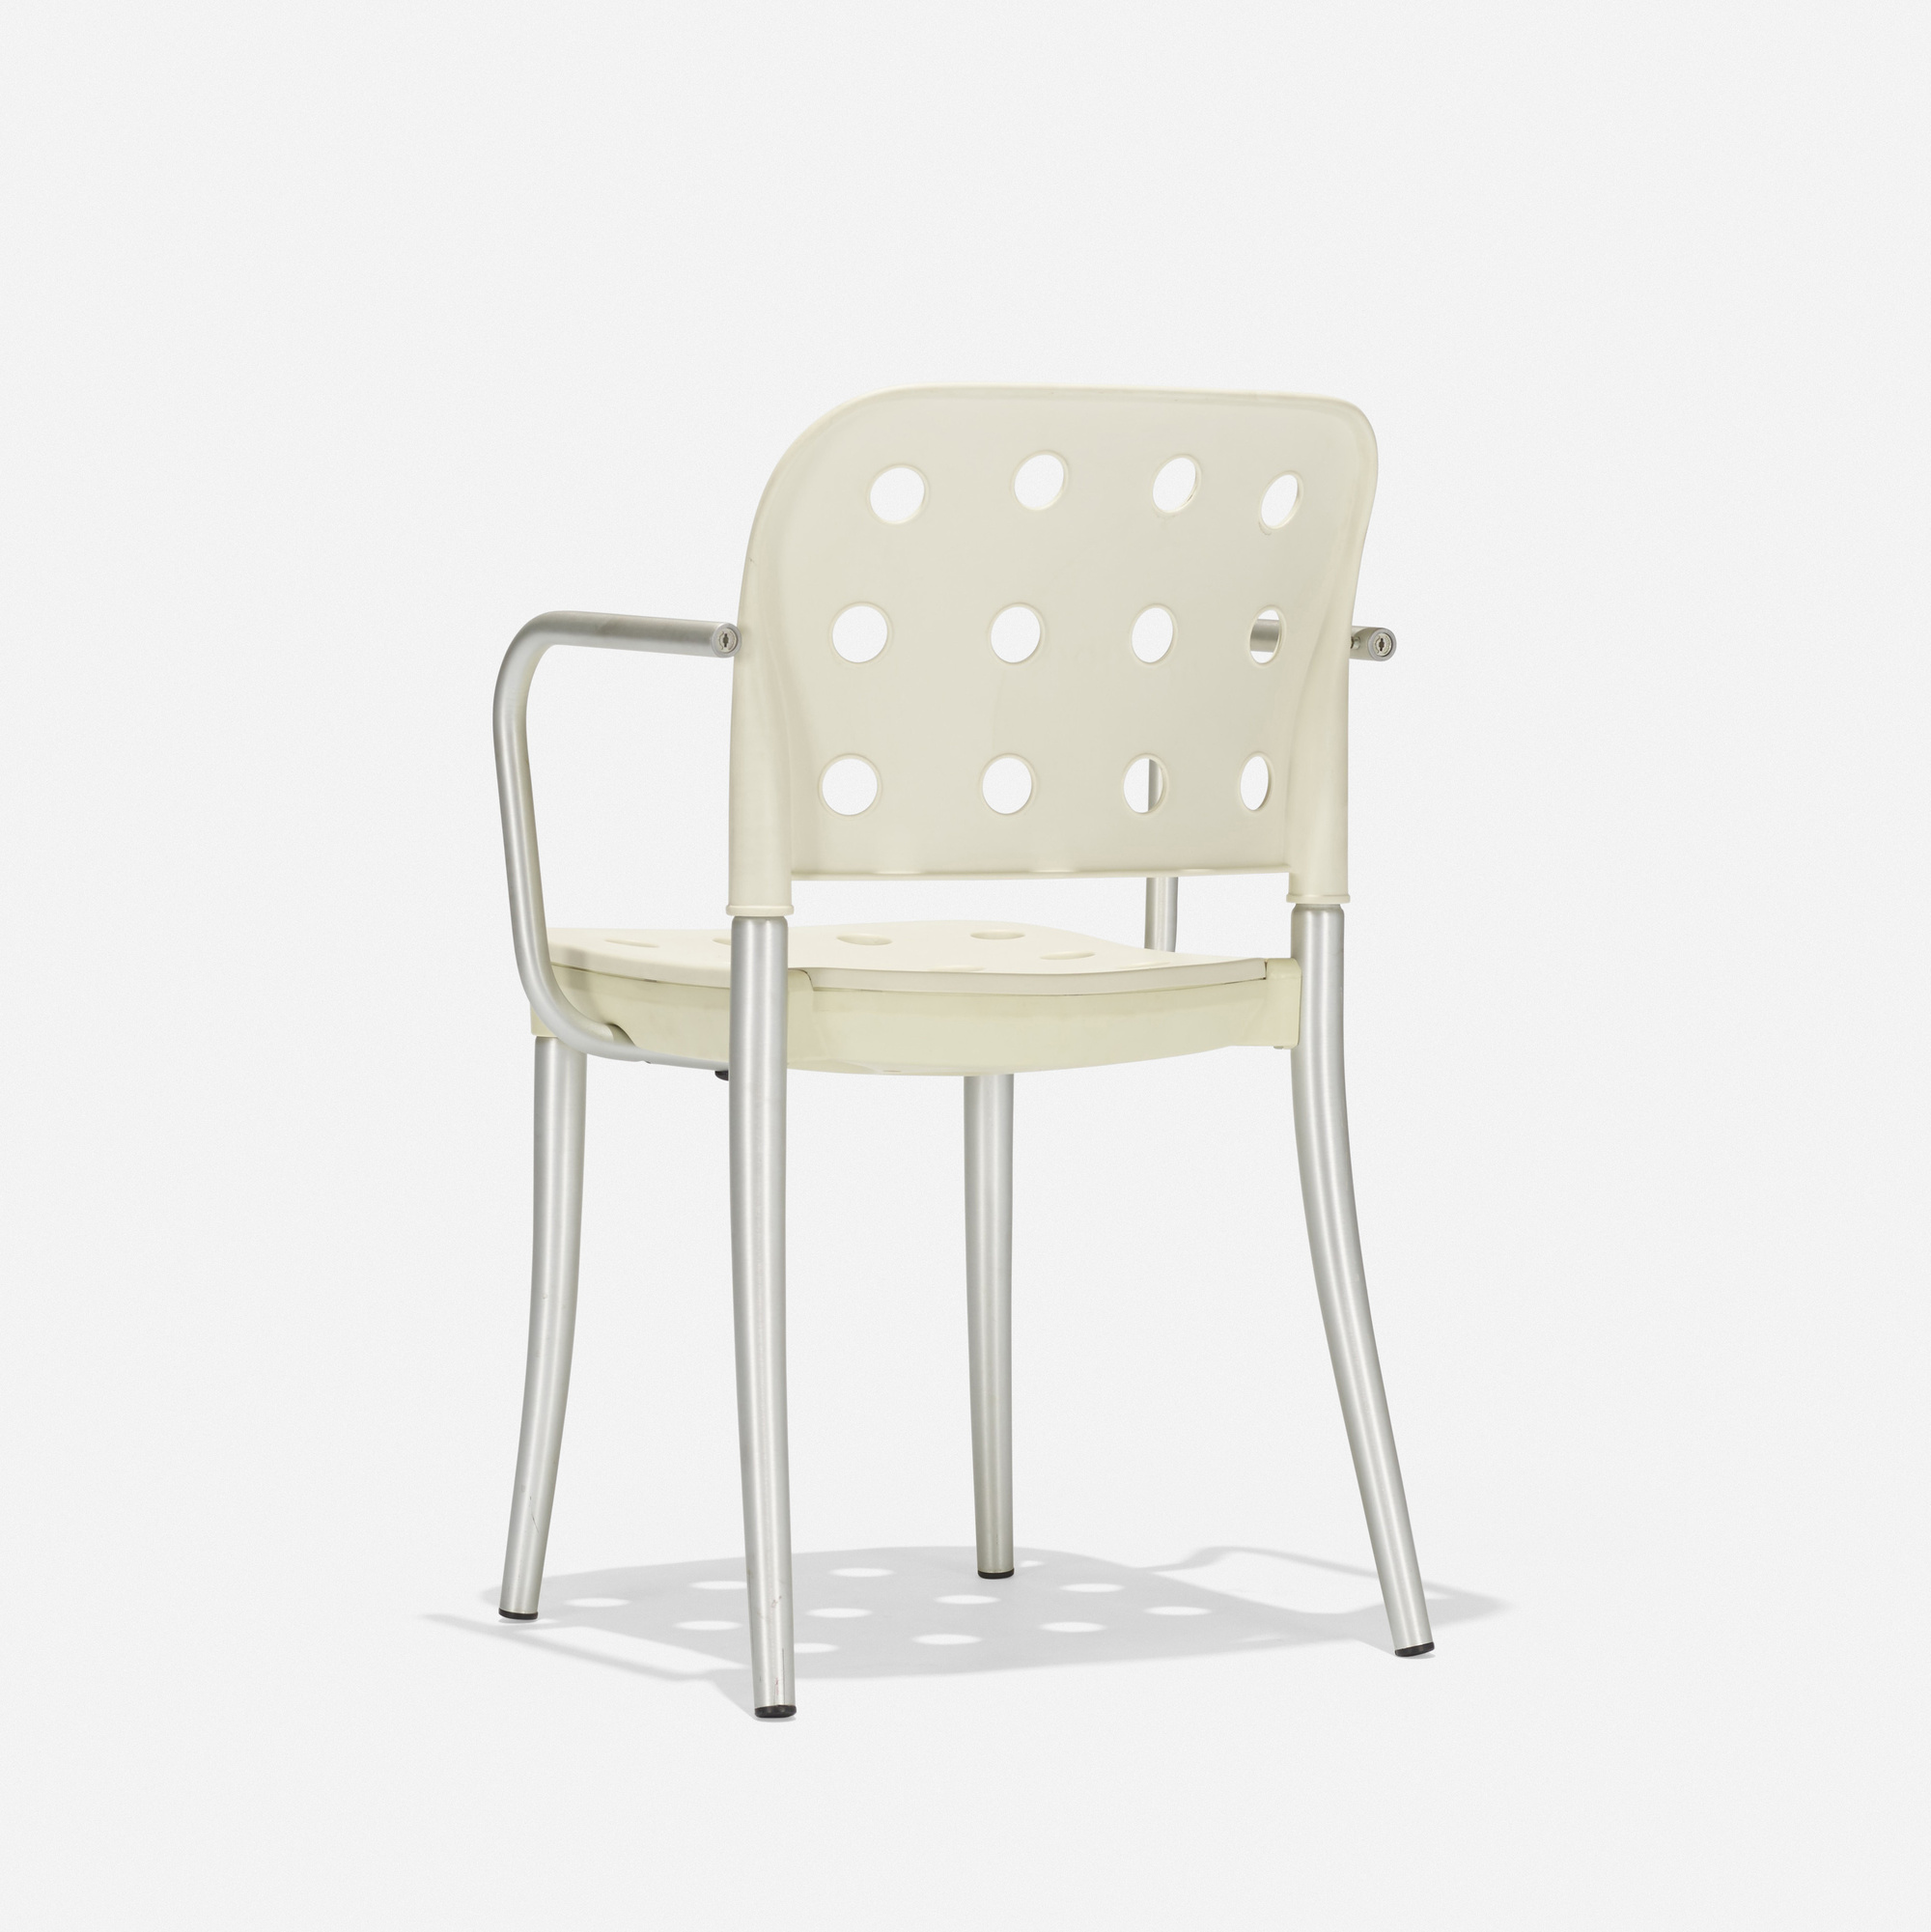 213: Antonio Citterio / Minni A1 chair (2 of 3)